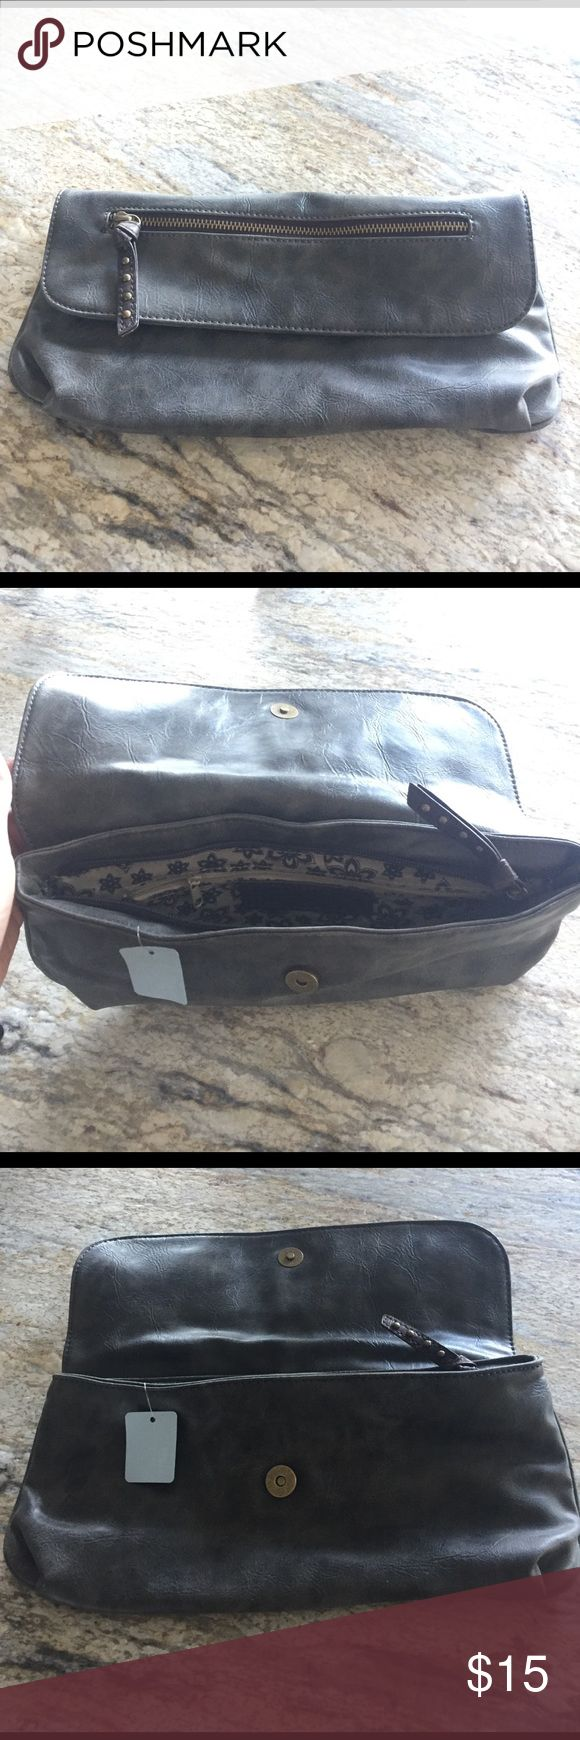 Faux leather grey clutch Faux leather dark grey clutch w/snap closure. Zippered inside pocket. Bags Clutches & Wristlets